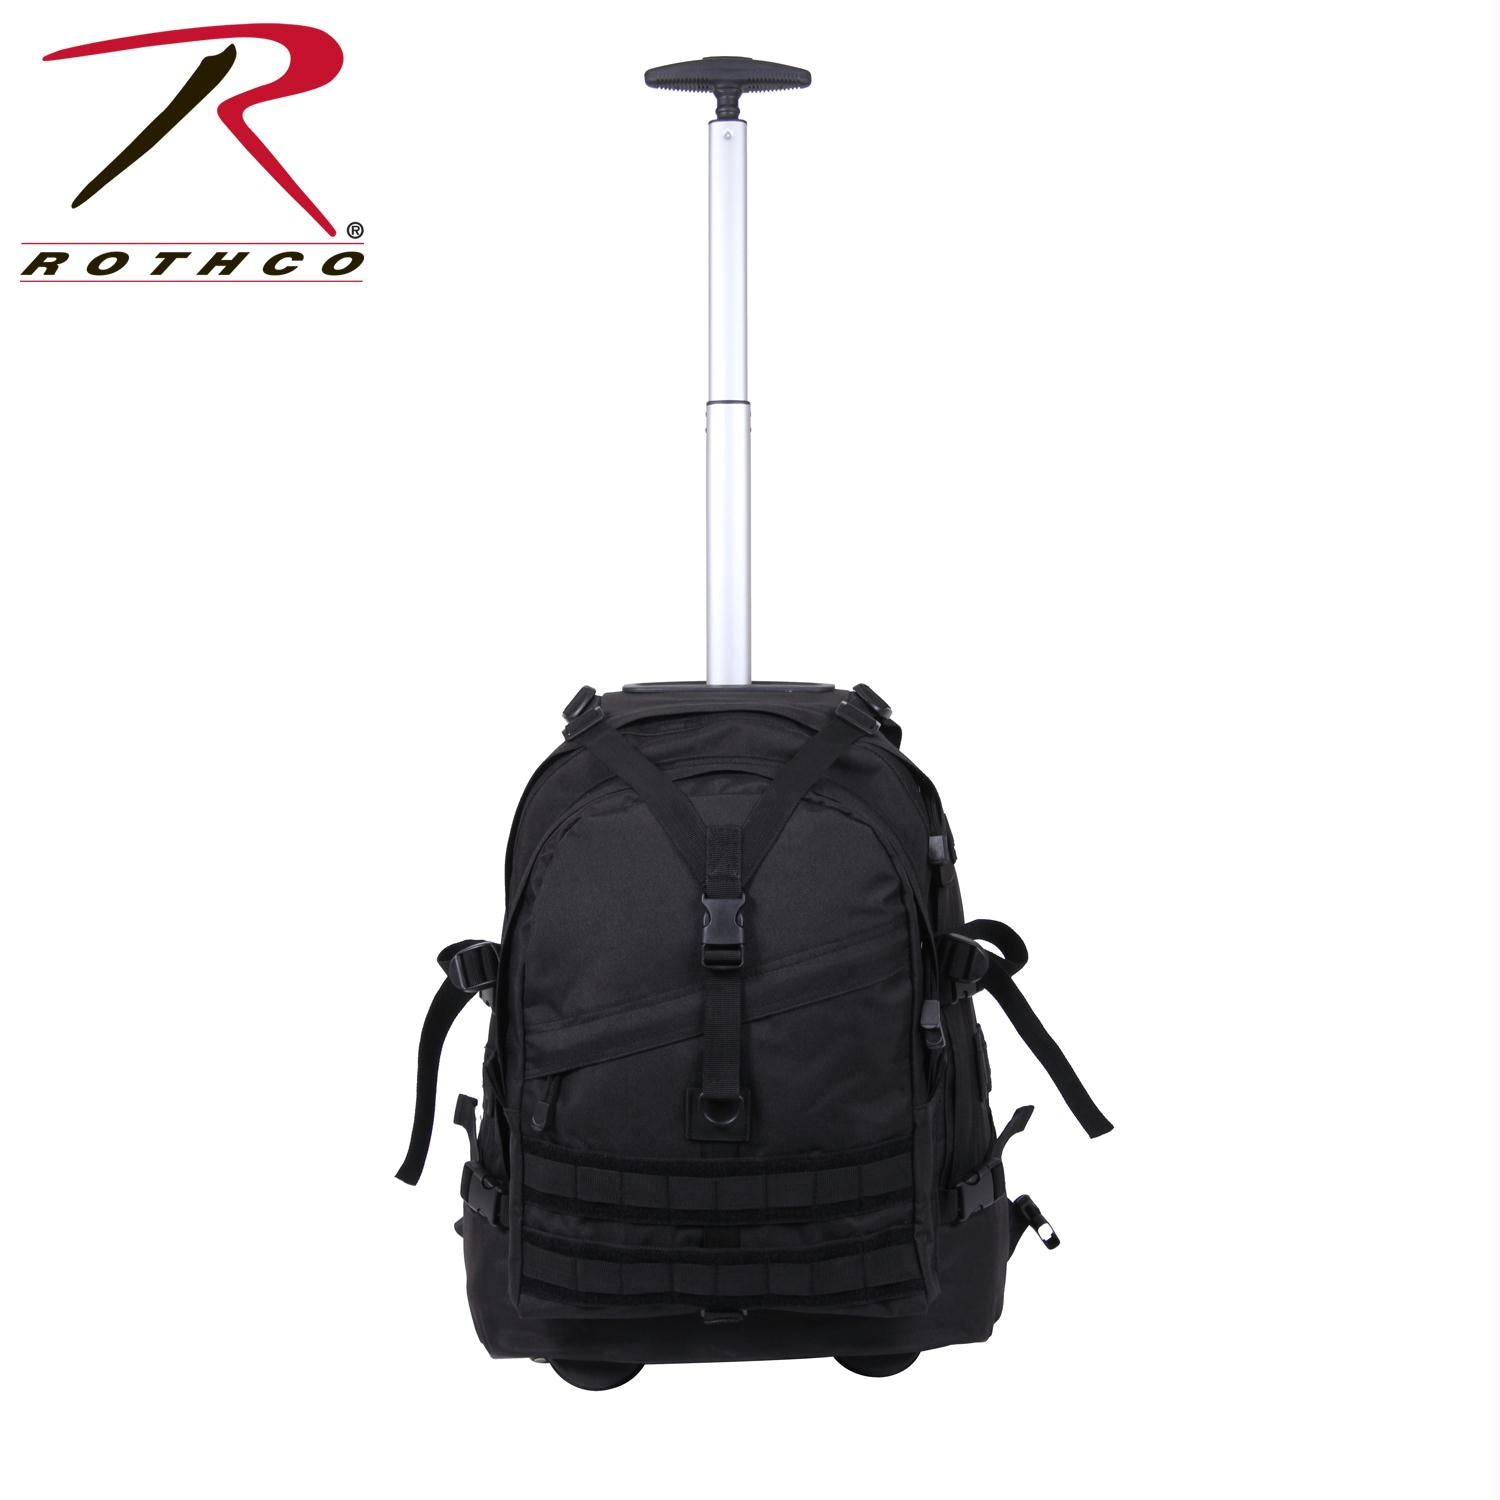 Rothco Rolling Large Transport Pack - Black